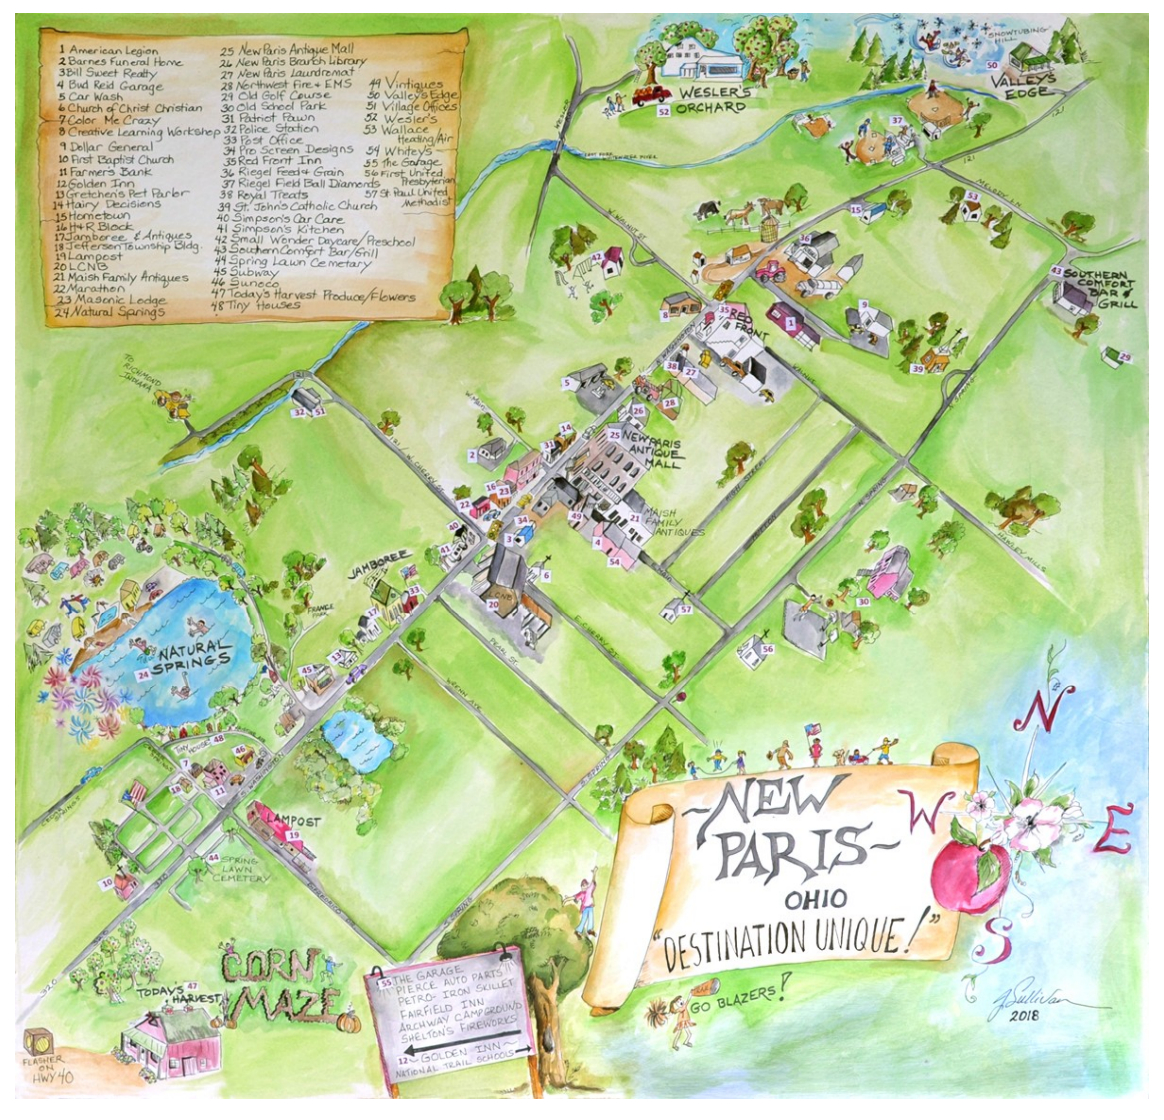 Village of New Paris Map